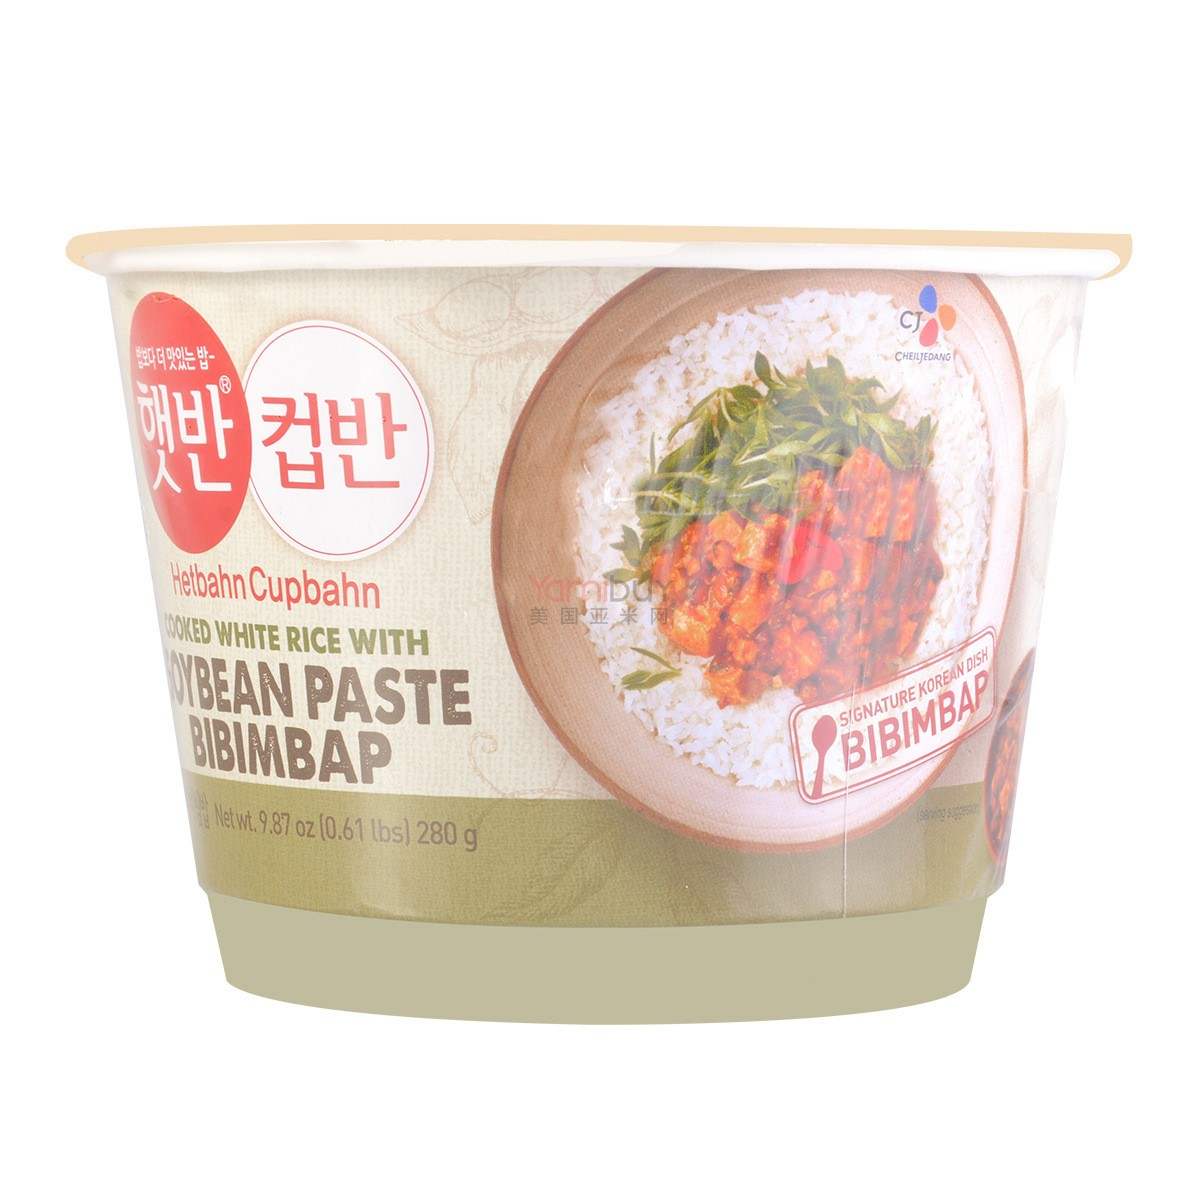 Yamibuy.com:Customer reviews:CJ Cooked White Rice with Soybean Paste Bibimbap 280g